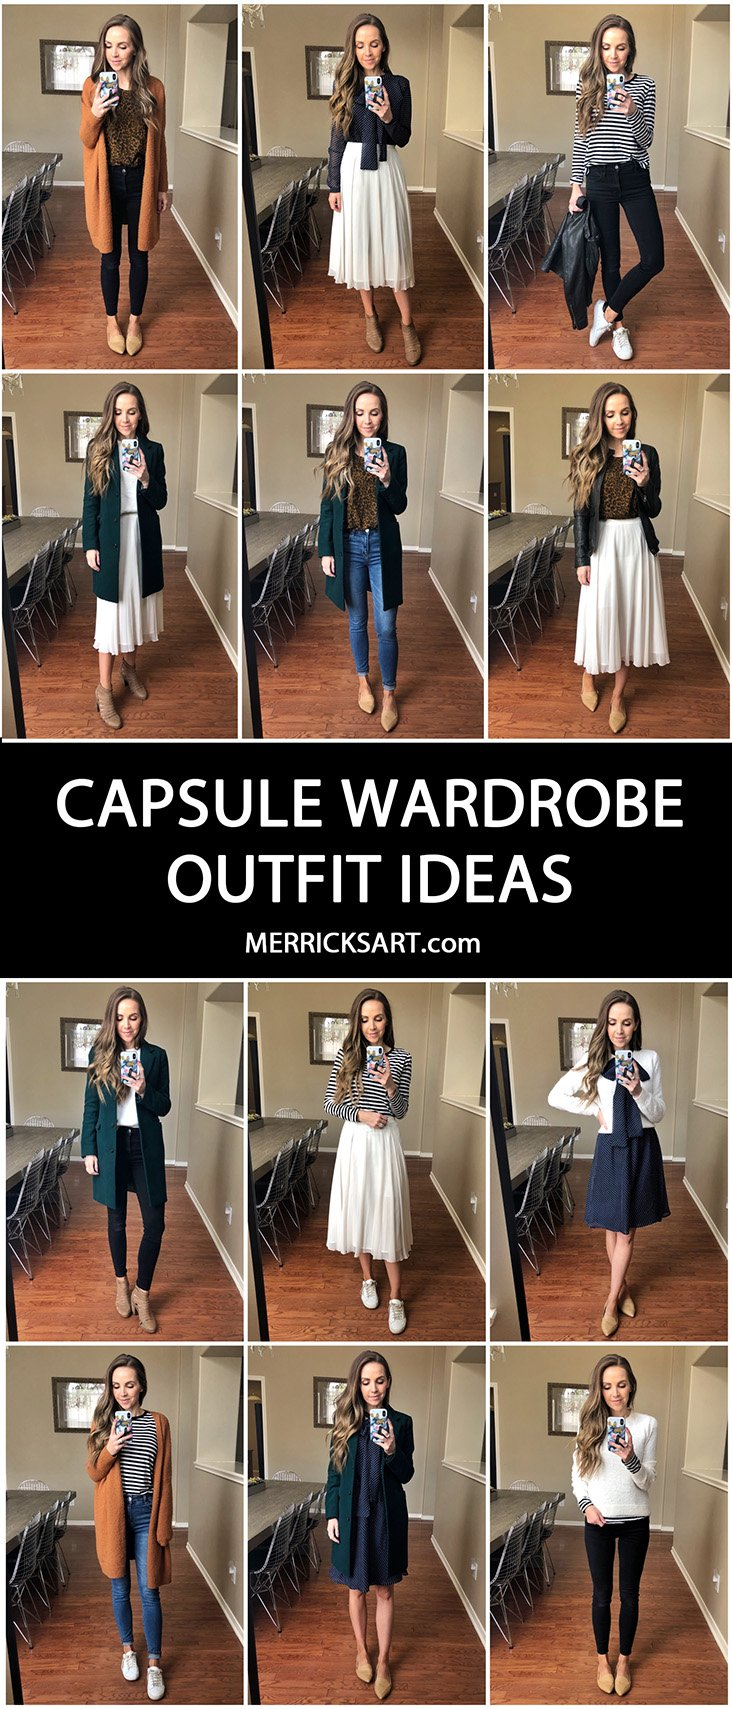 Put together unique and fun ideas even in your capsule wardrobe!